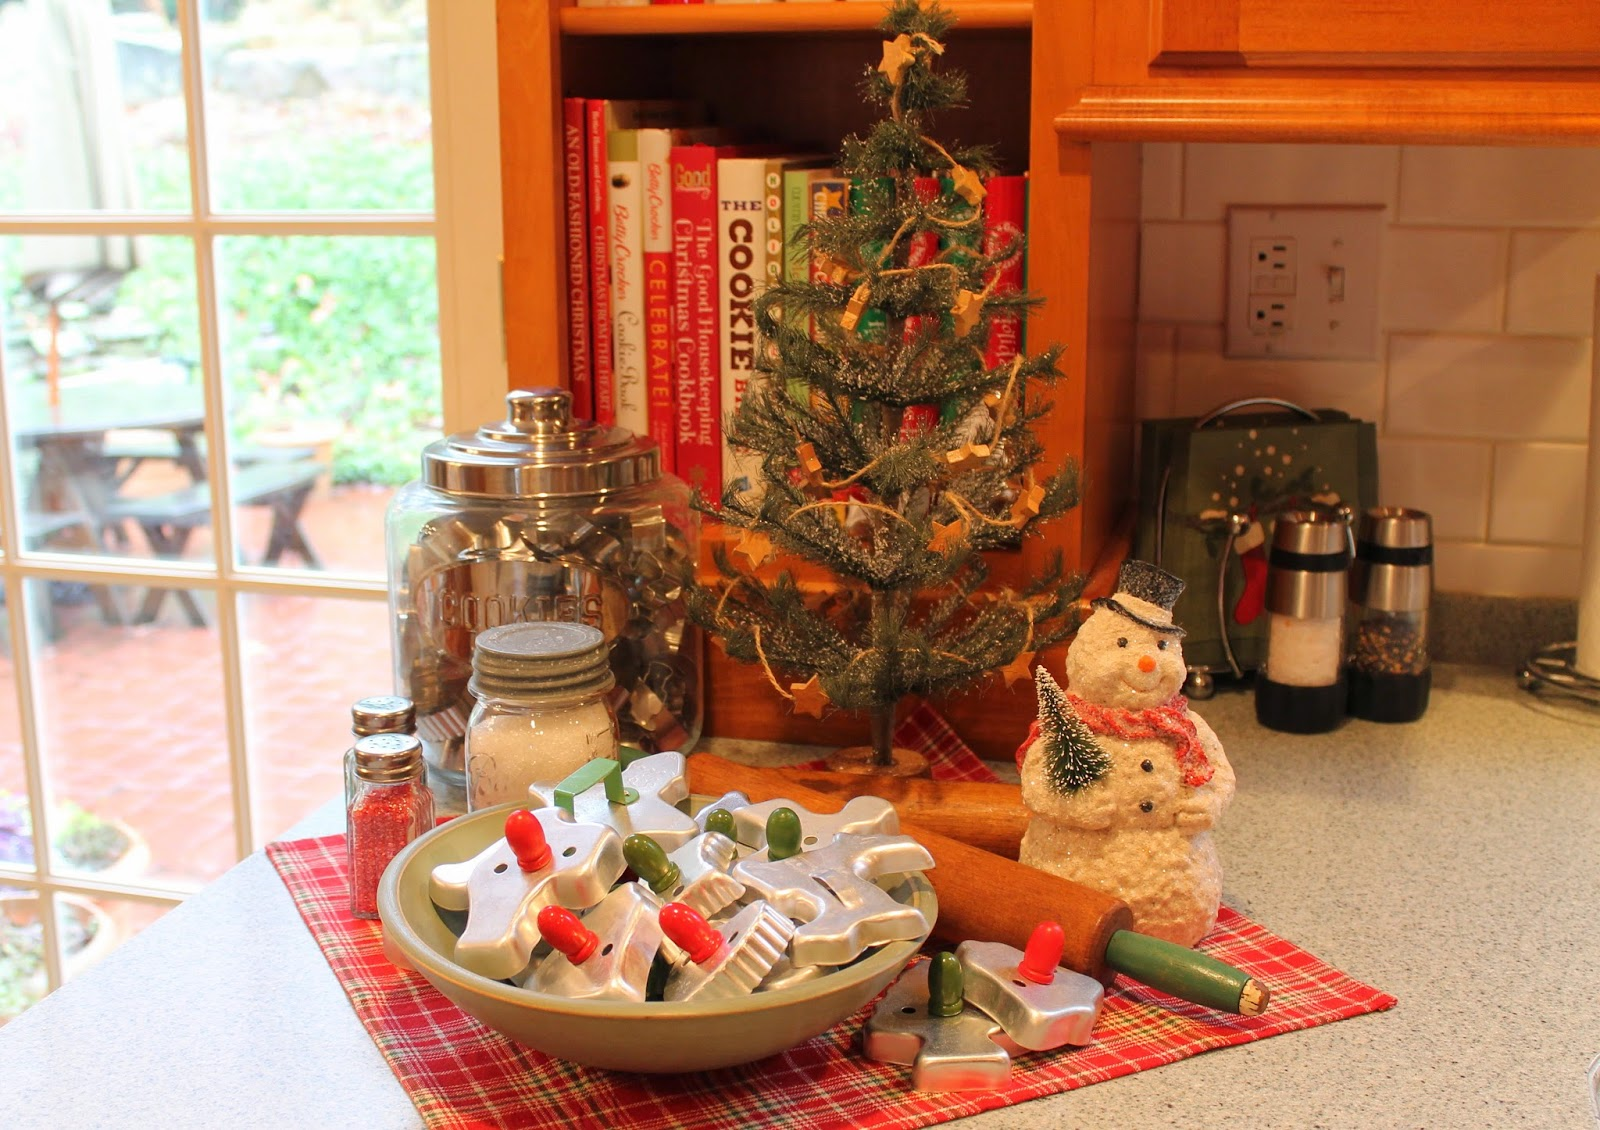 today im sharing a simple little vignette that sits on my kitchen counter and its all about family traditions and baking christmas cookies